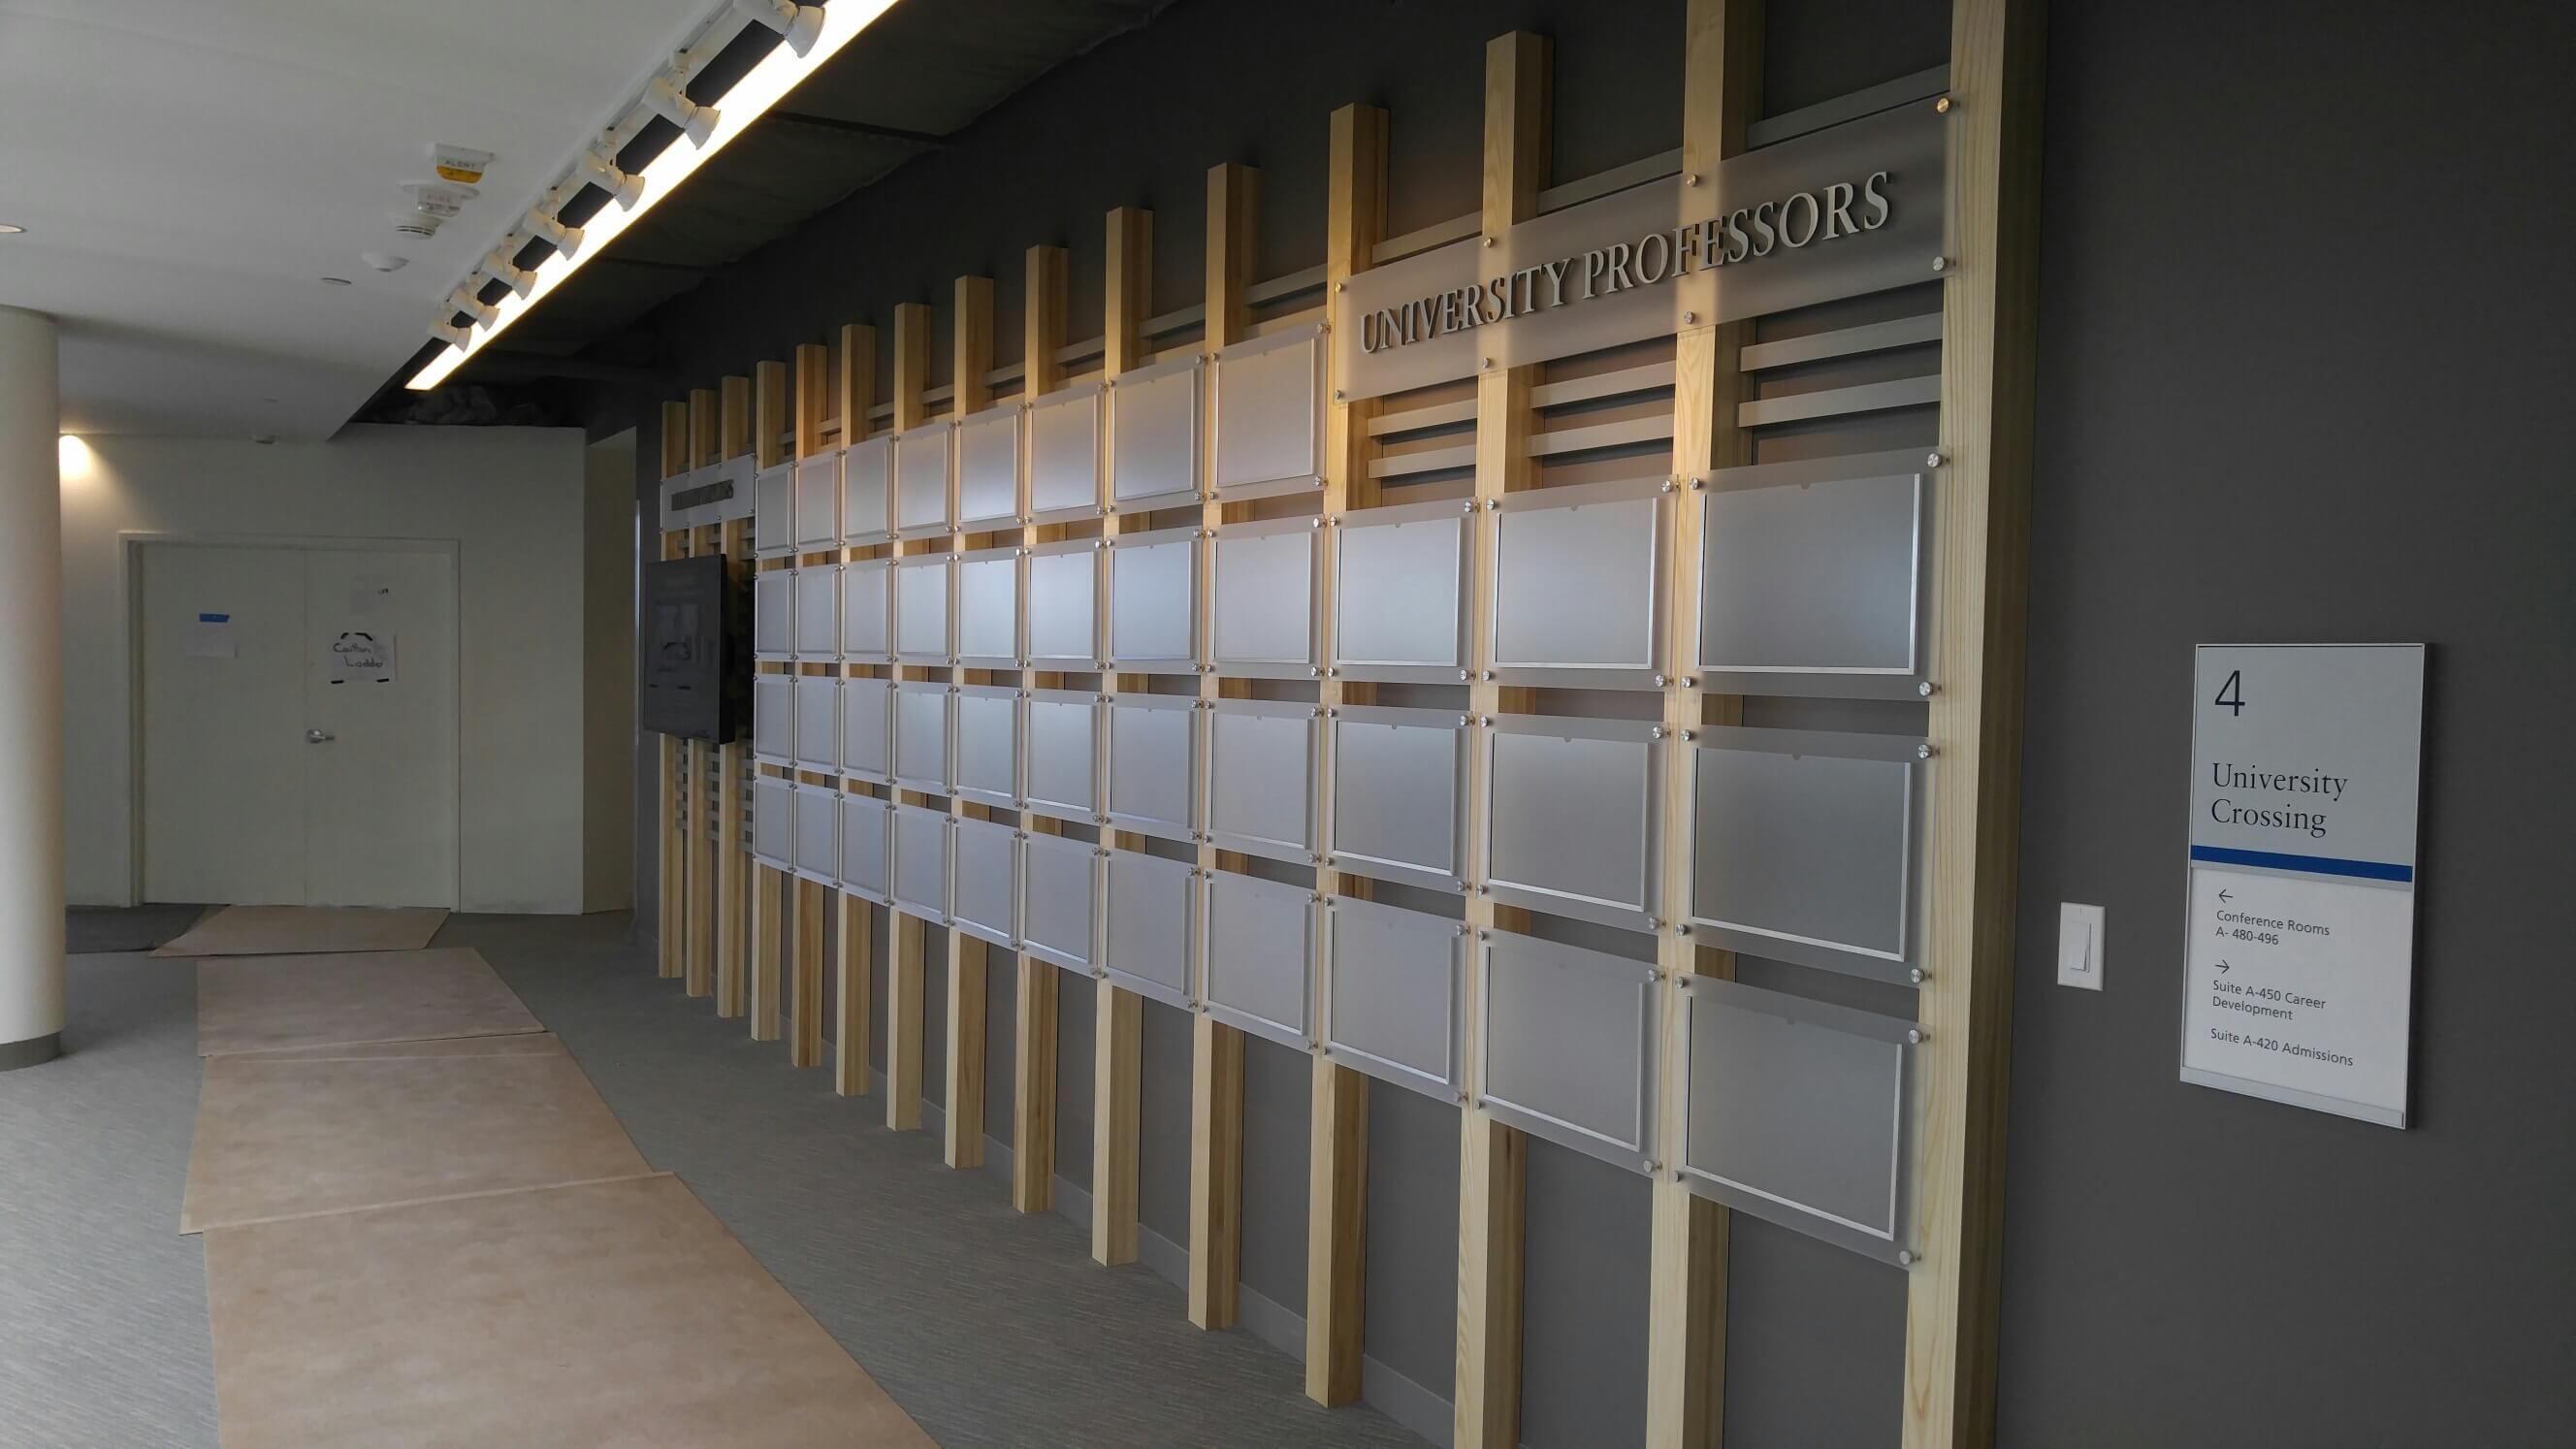 Photo Wall with Dimensinoal Letters